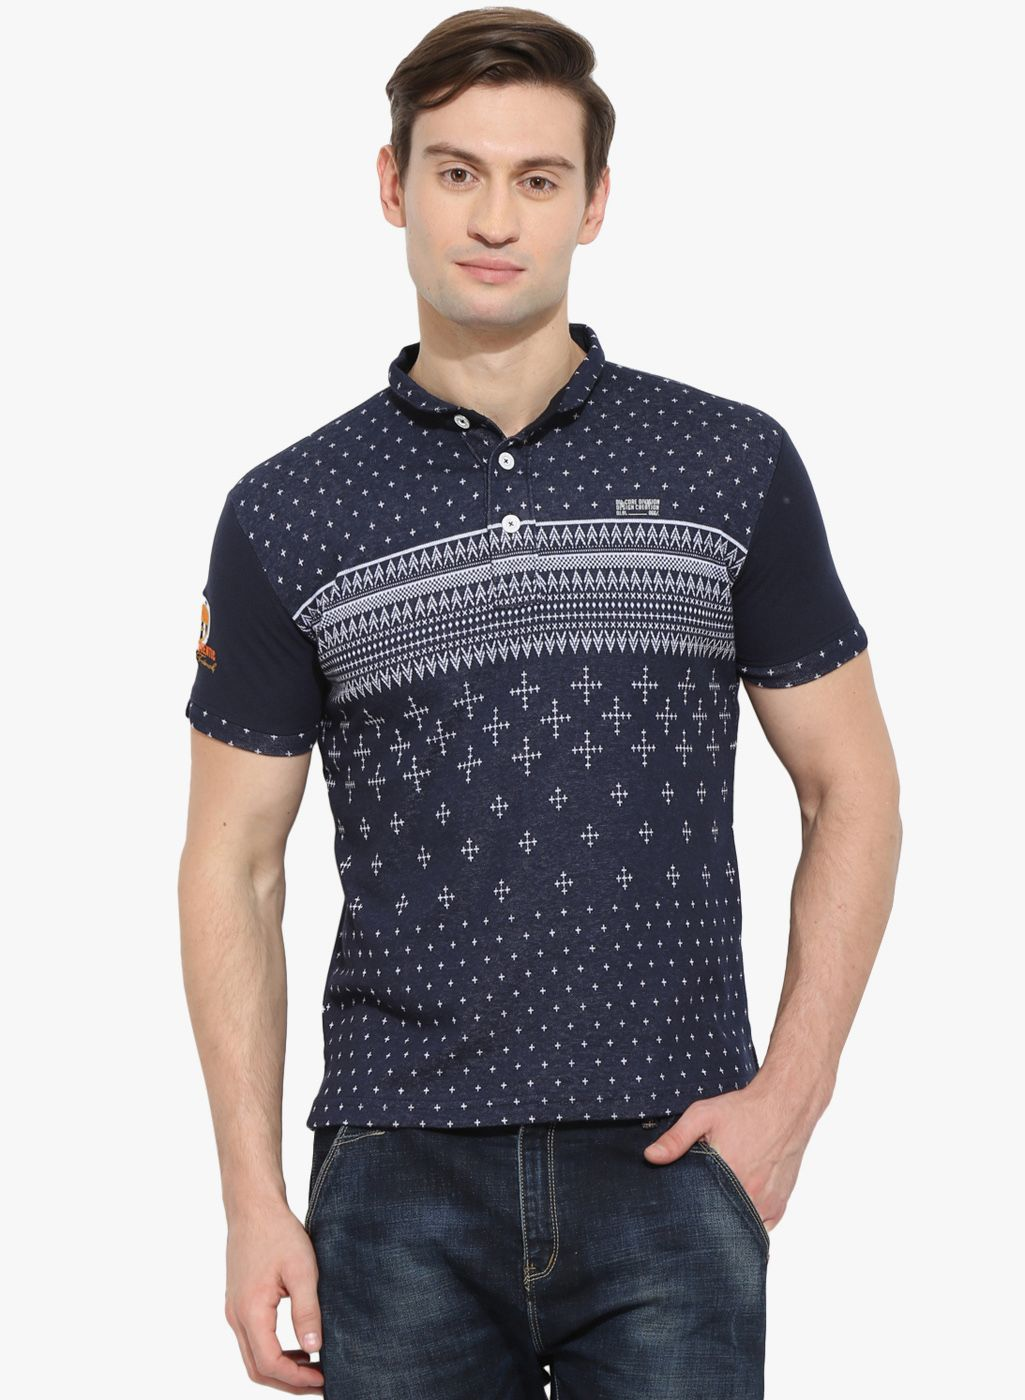 3bccb8b1cf4a97 Buy Duke Navy Blue Printed Polo T-Shirt for Men Online India, Best Prices,  Reviews   DU524MA48RIXINDFAS